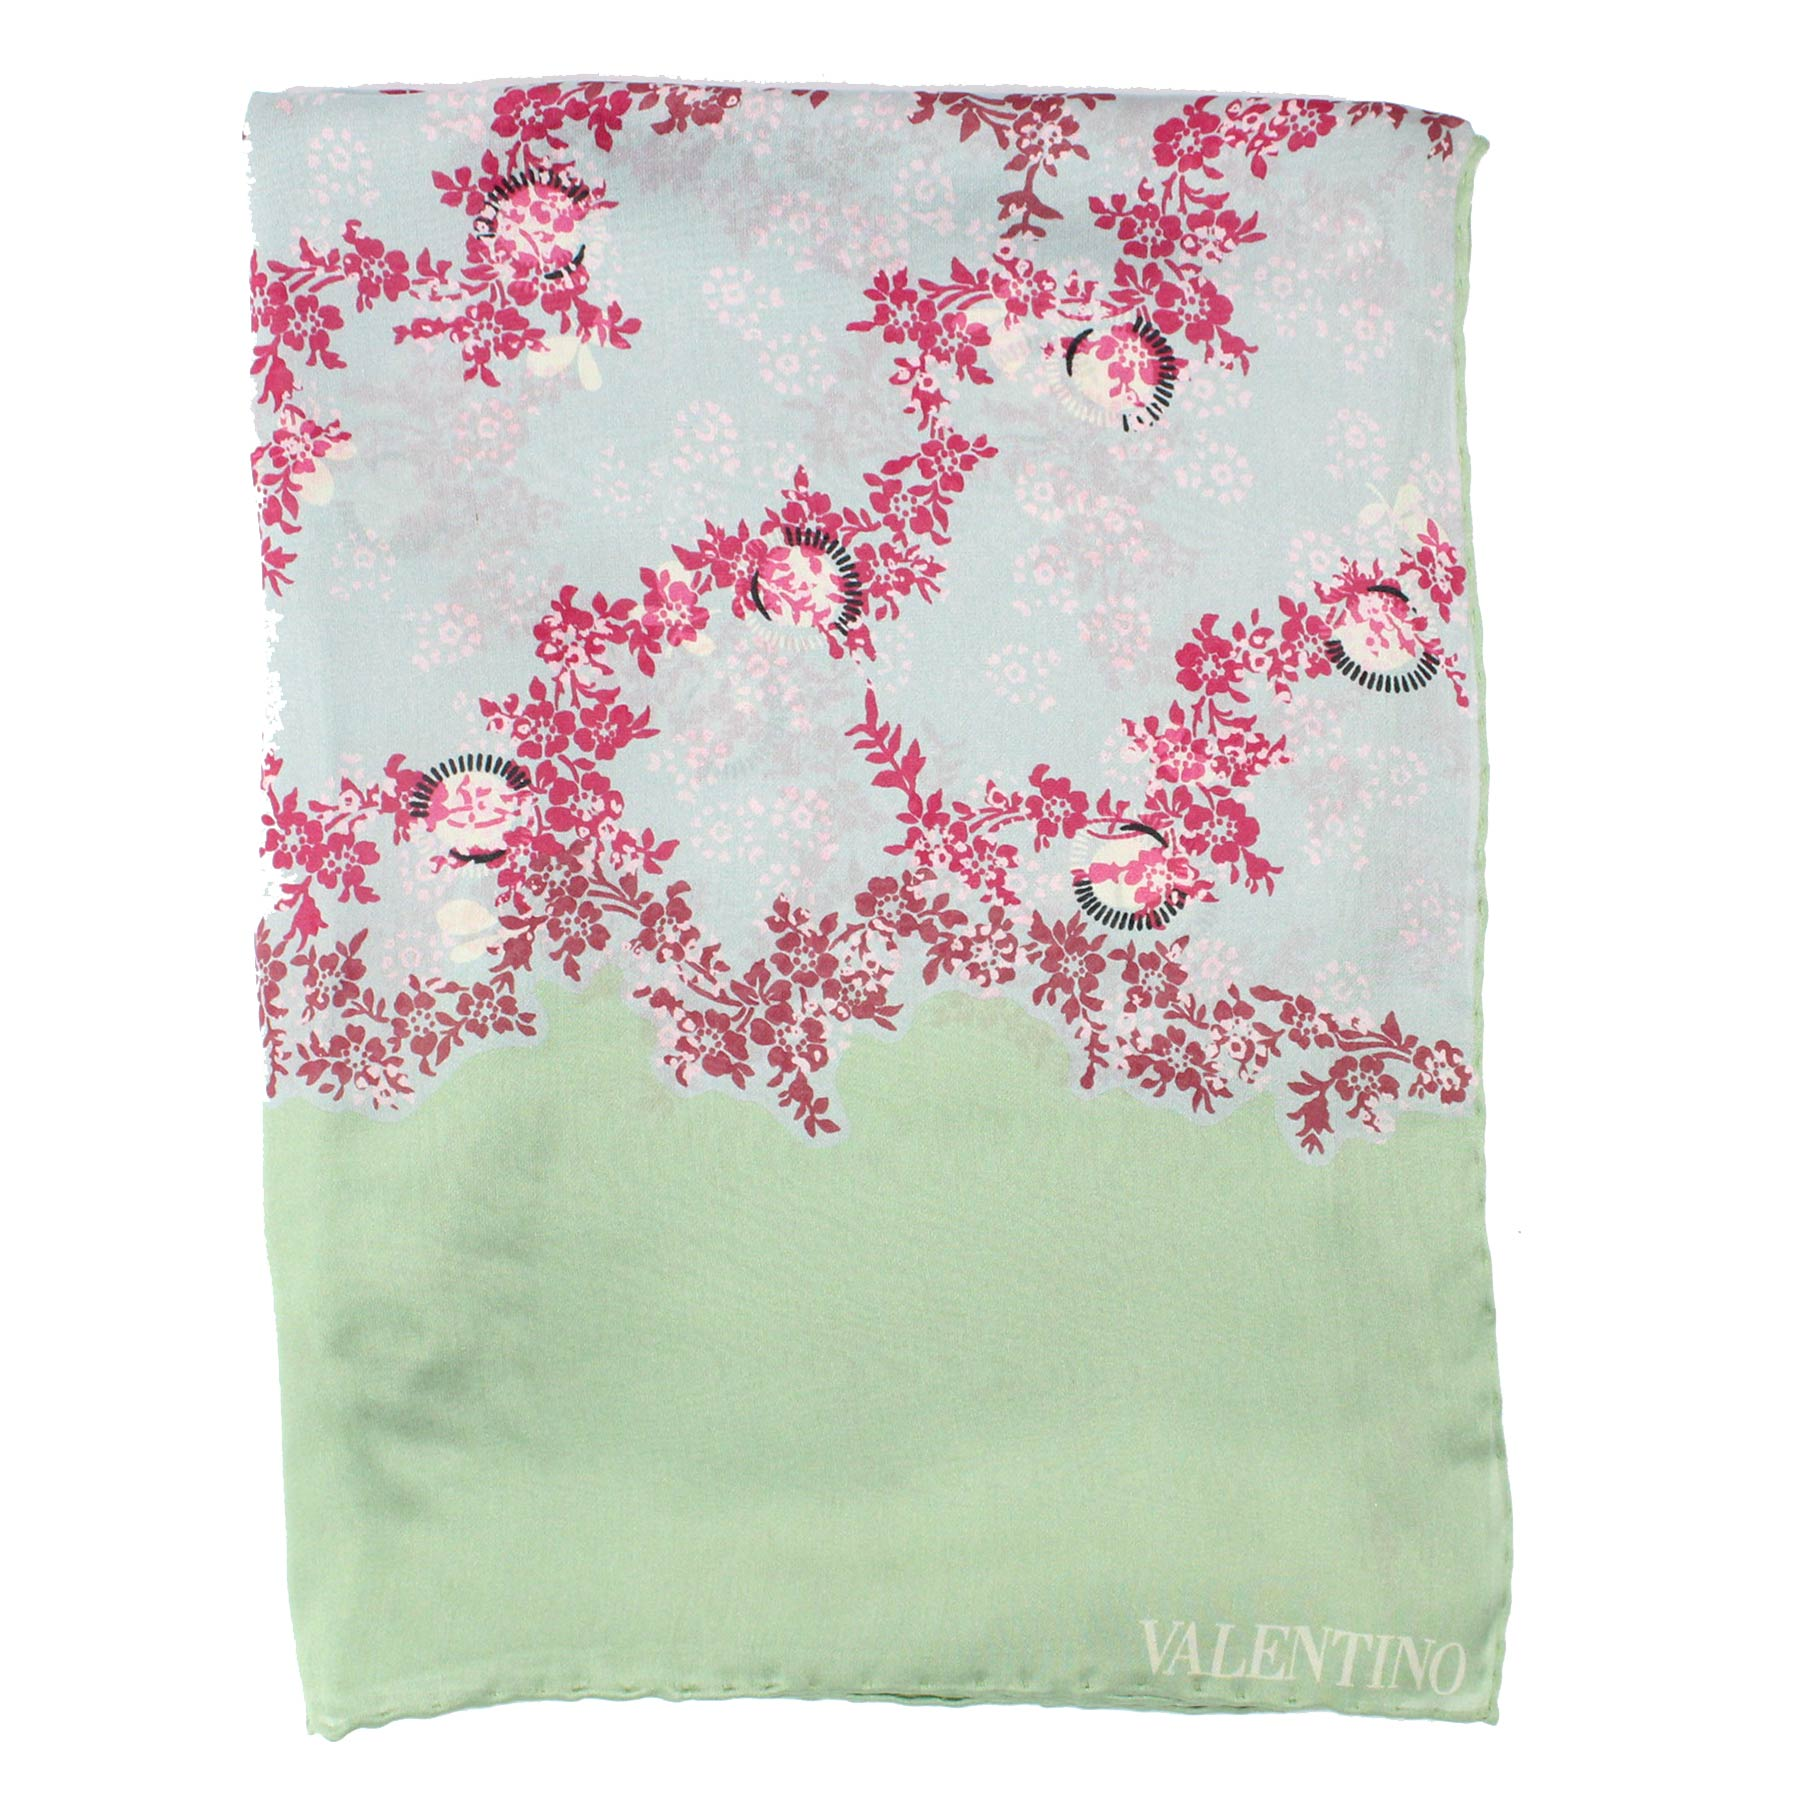 Valentino Scarf Mint Green Floral New